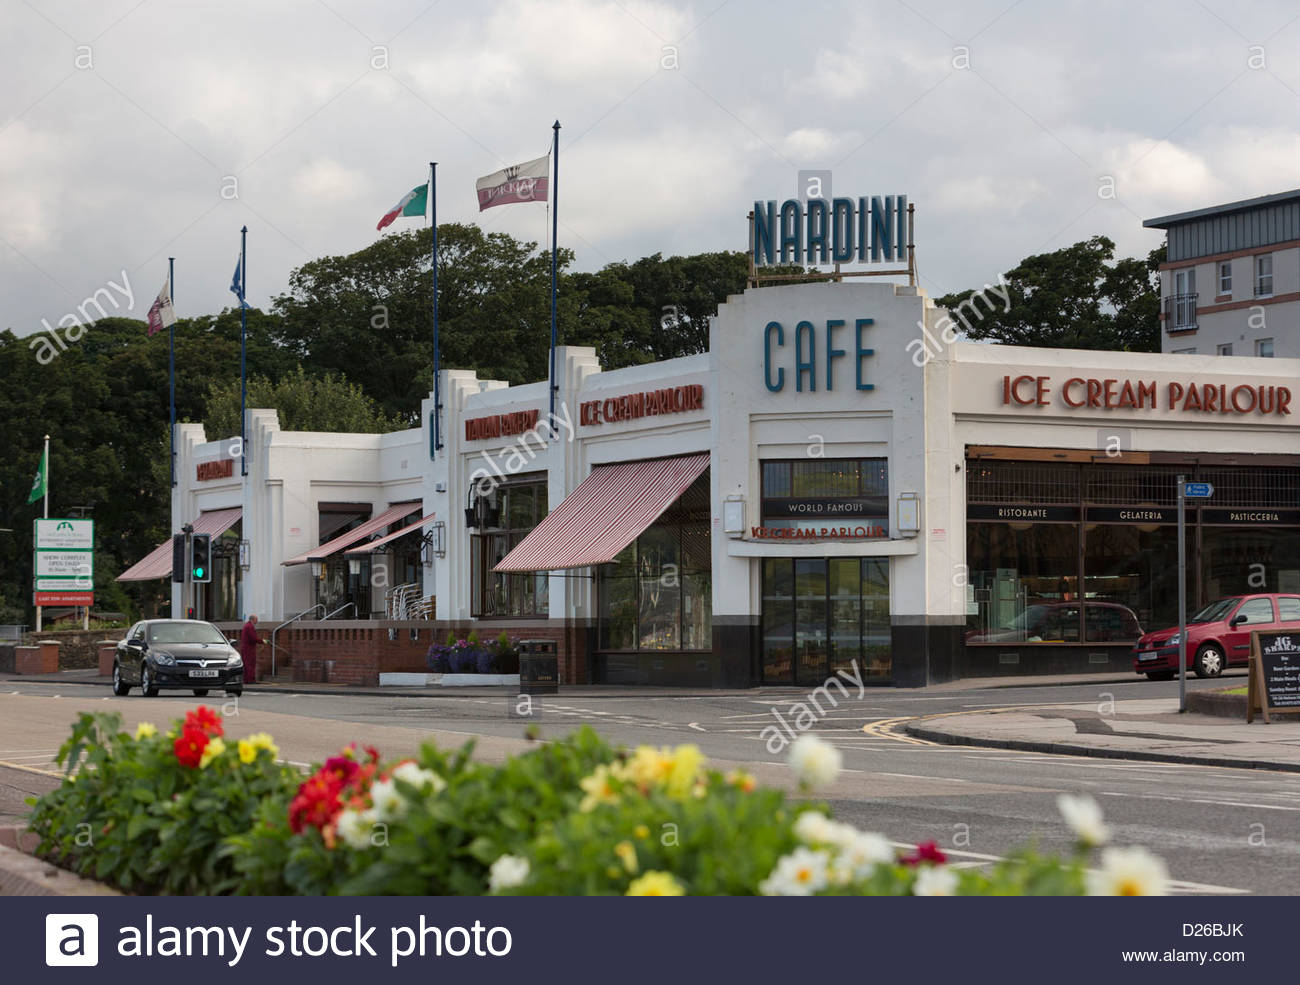 Art Deco exterior of Nardini's cafe, restaurant and Ice cream parlour, Largs, Ayrshire - Stock Image